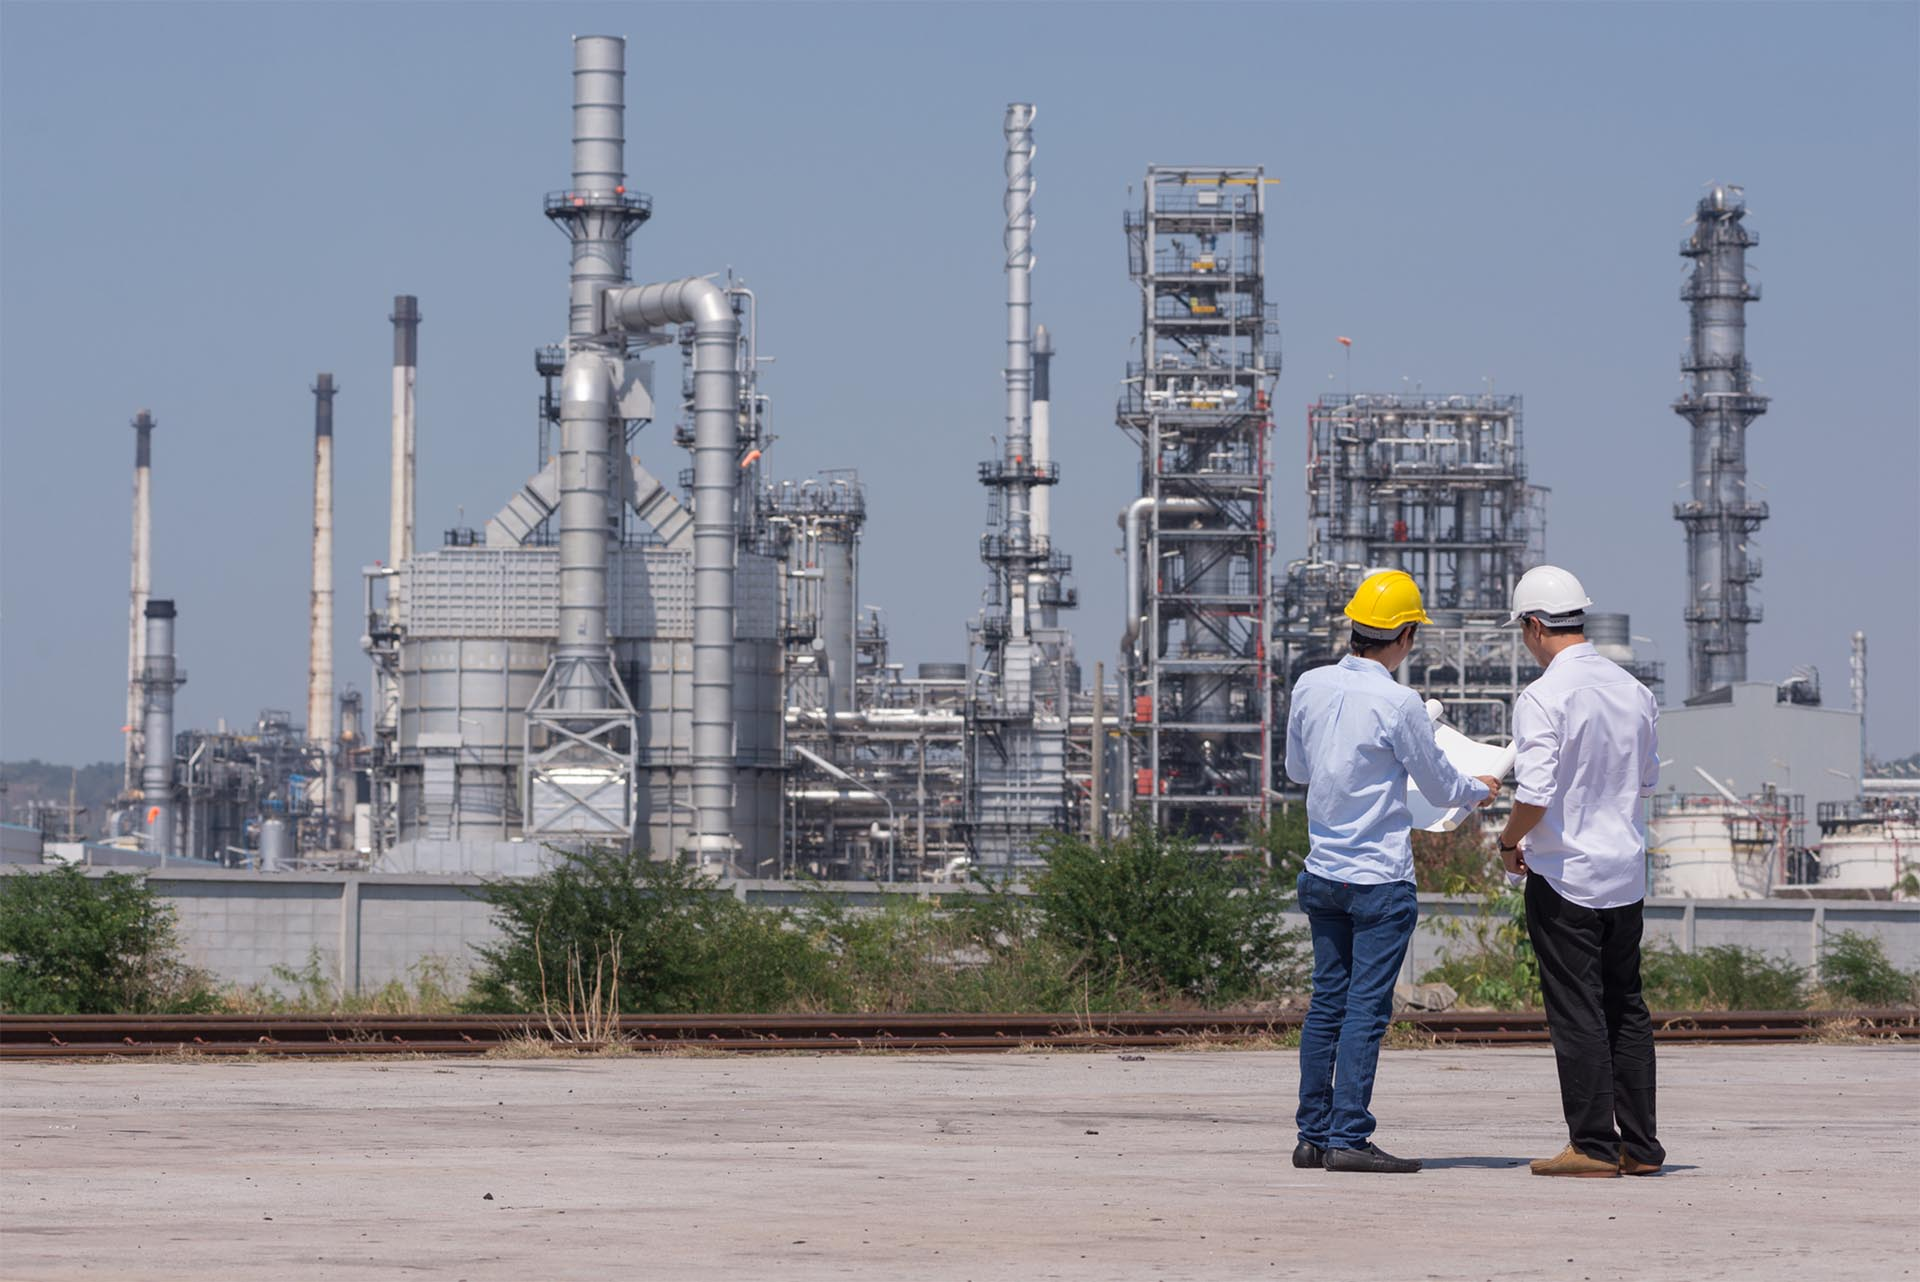 2 engineers discussing heat recovery options at an oil refinery